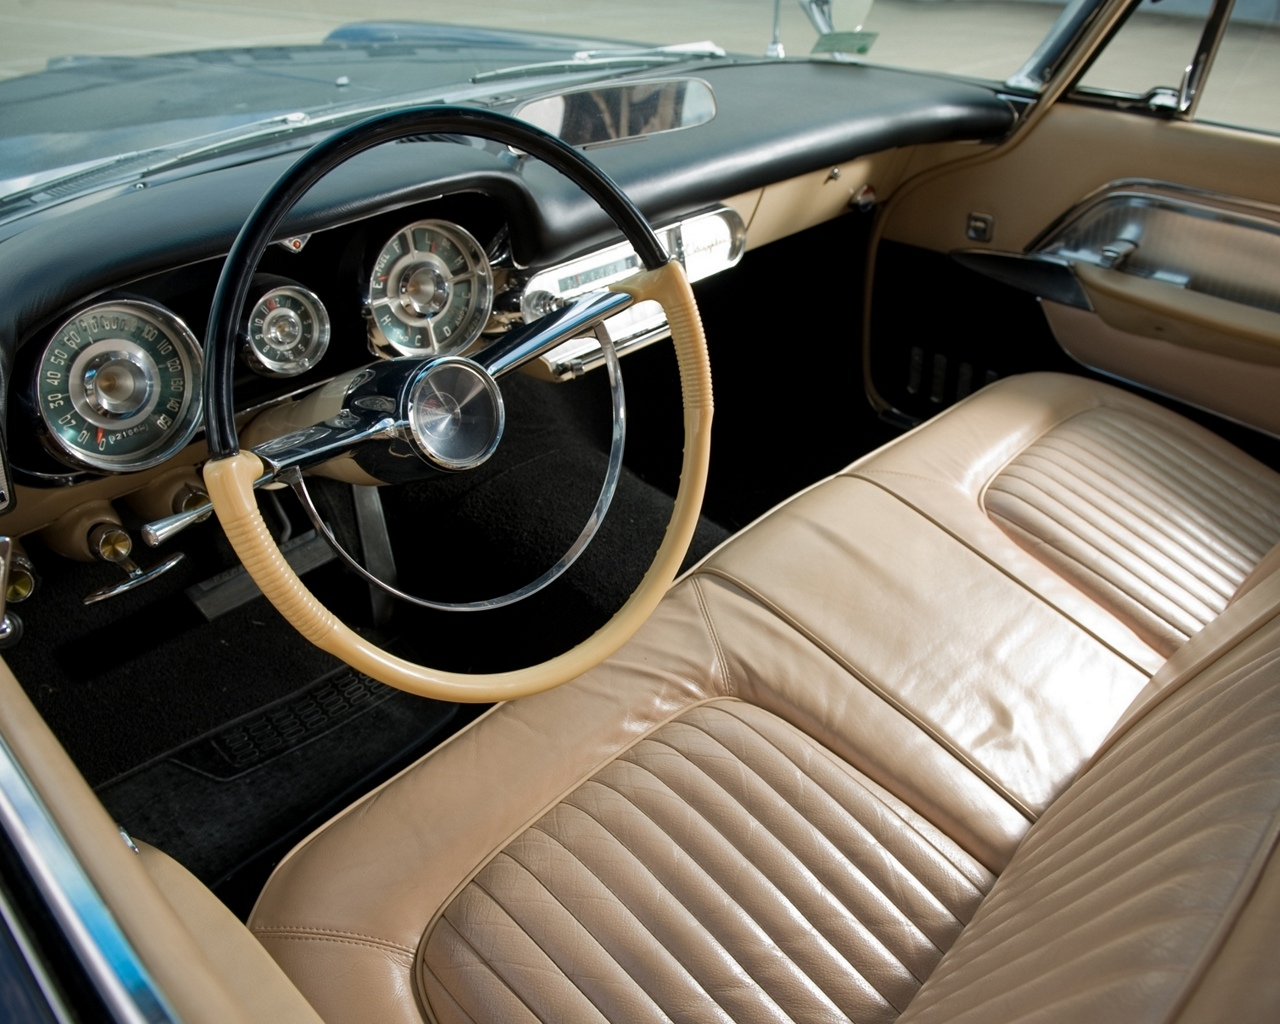 Tri Mix Interior : American classic cars wallpaper hottest pictures